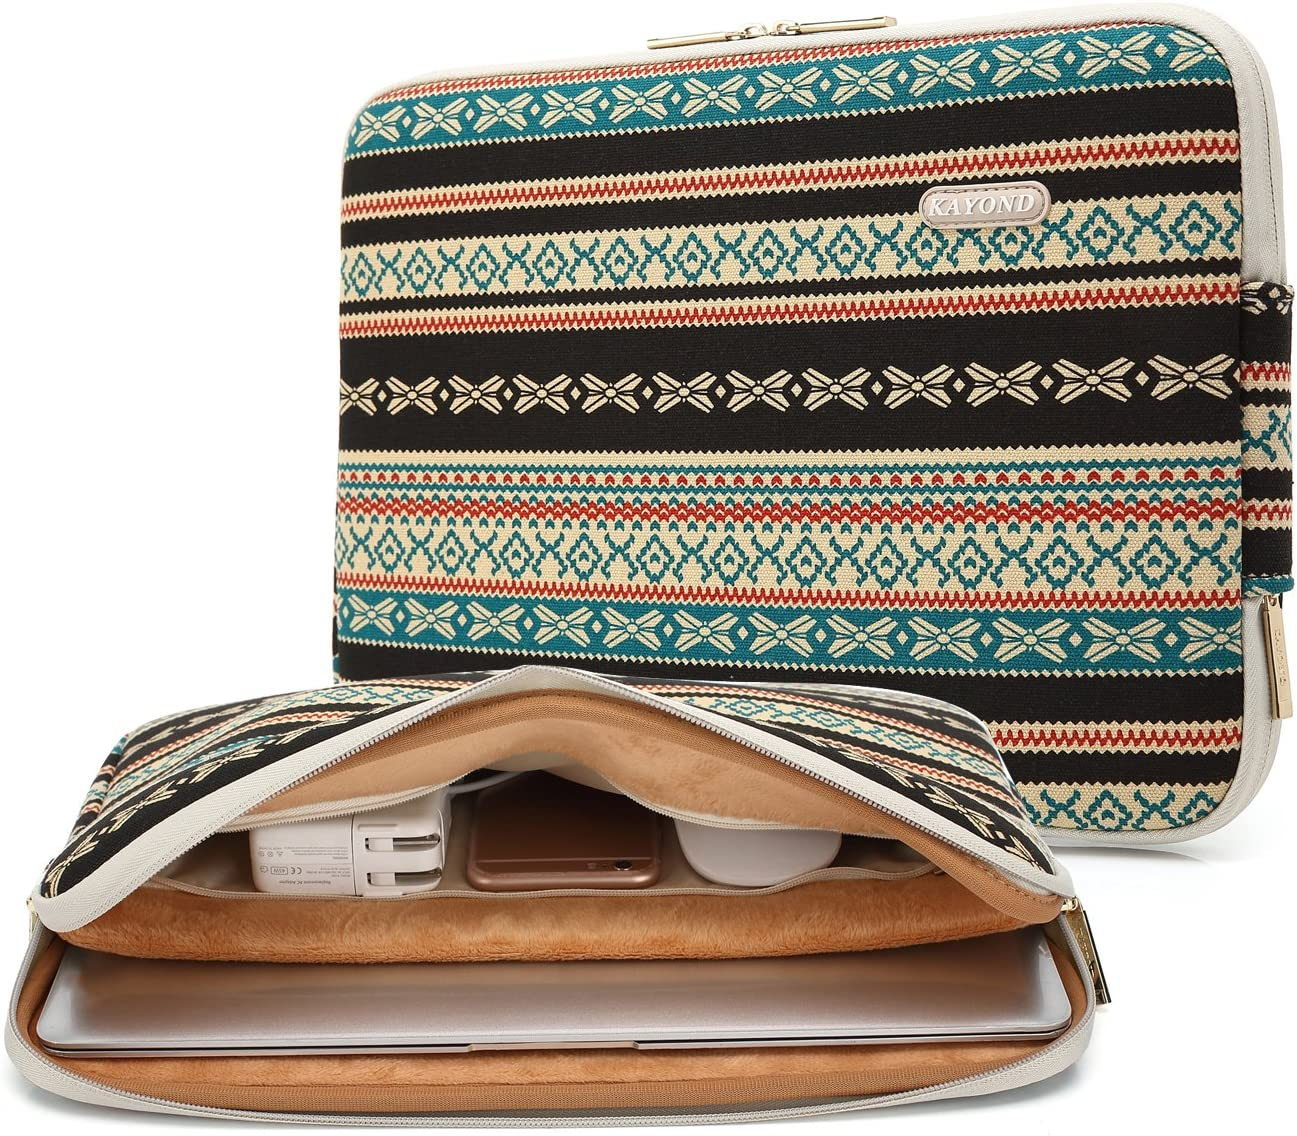 Kayond Canvas Water-Resistant 11 inch Laptop Sleeve with Pocket 11 inch 11.6 inch Laptop Case Compatible MacBook air 11 MacBook 12 Tablet (New Bohemian)